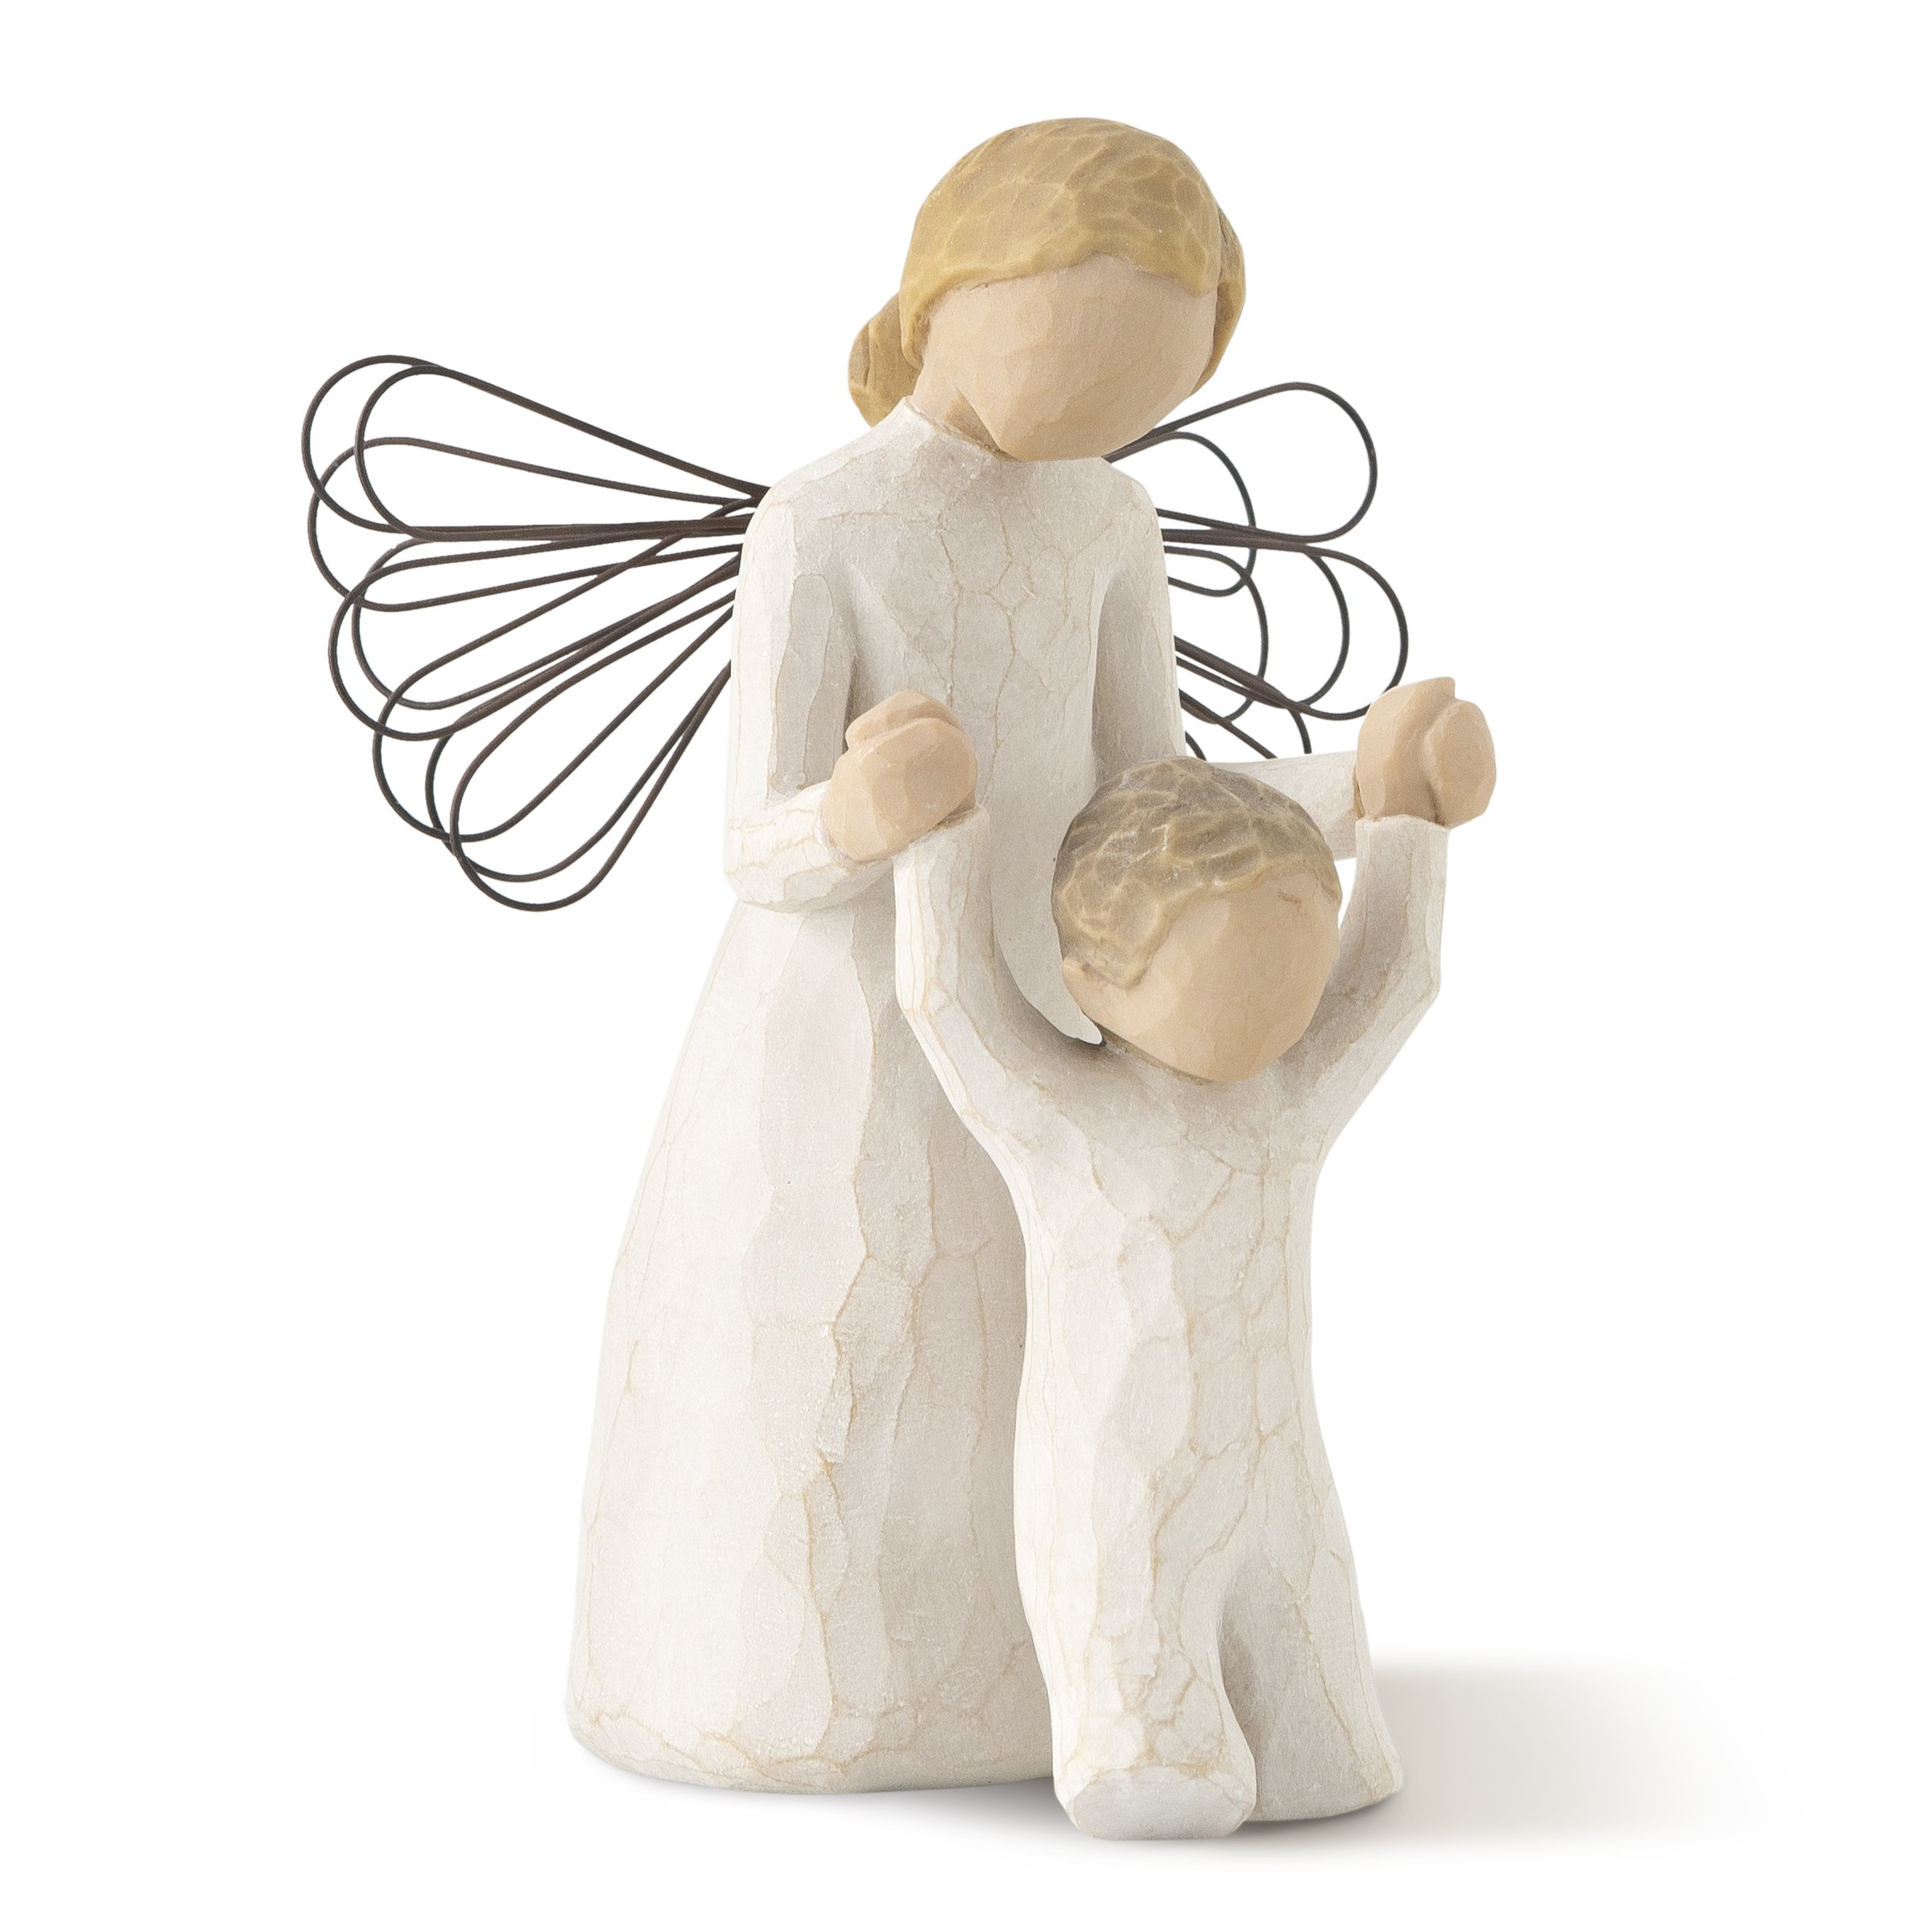 Willow Tree hand-painted sculpted angel, Guardian Angel by Willow Tree